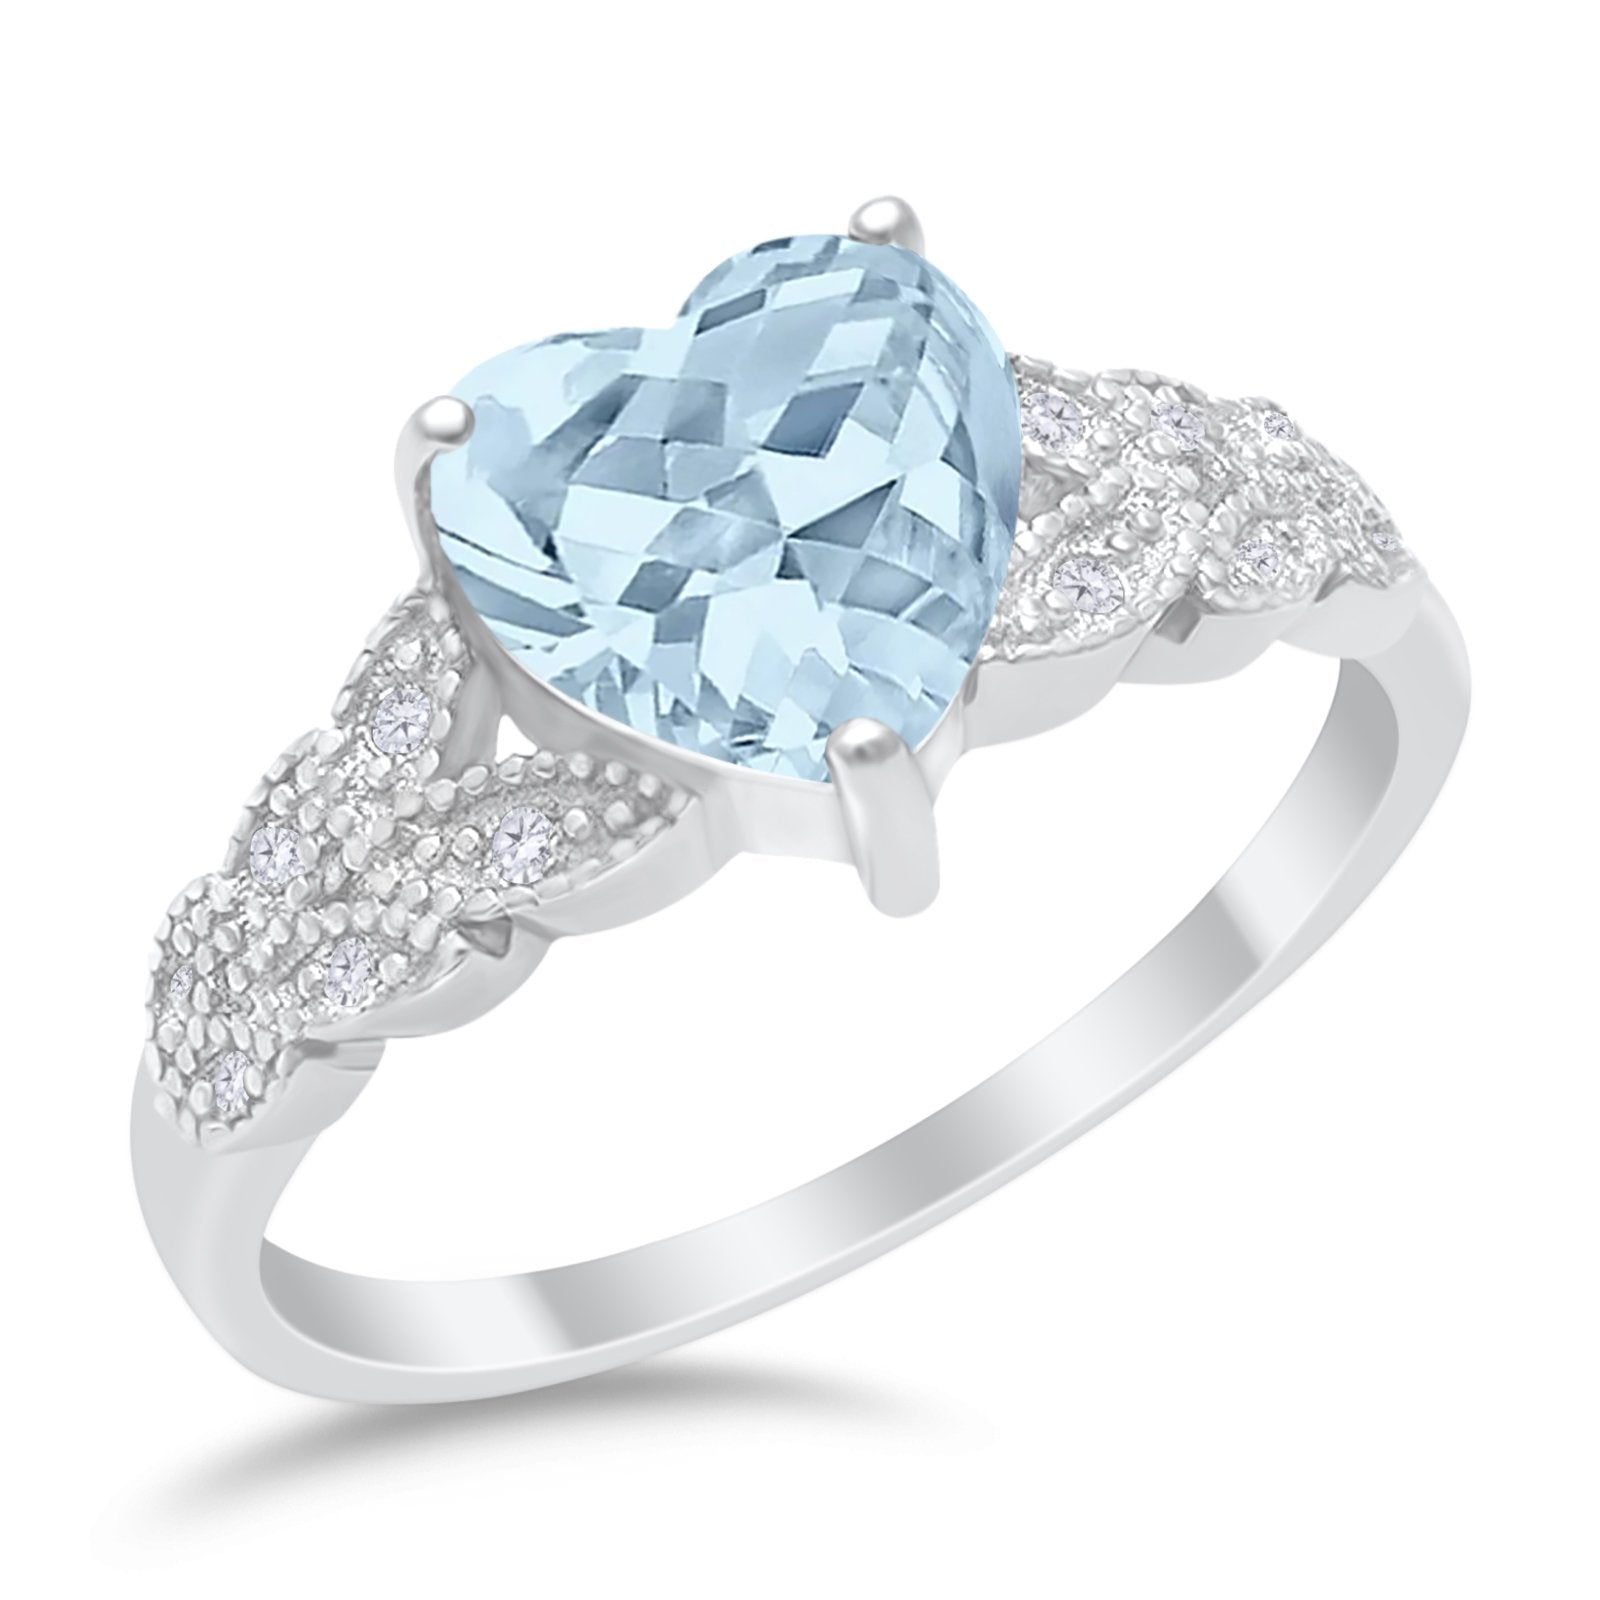 Accent Heart Promise Ring Simulated Aquamarine Cubic Zirconia 925 Sterling Silver